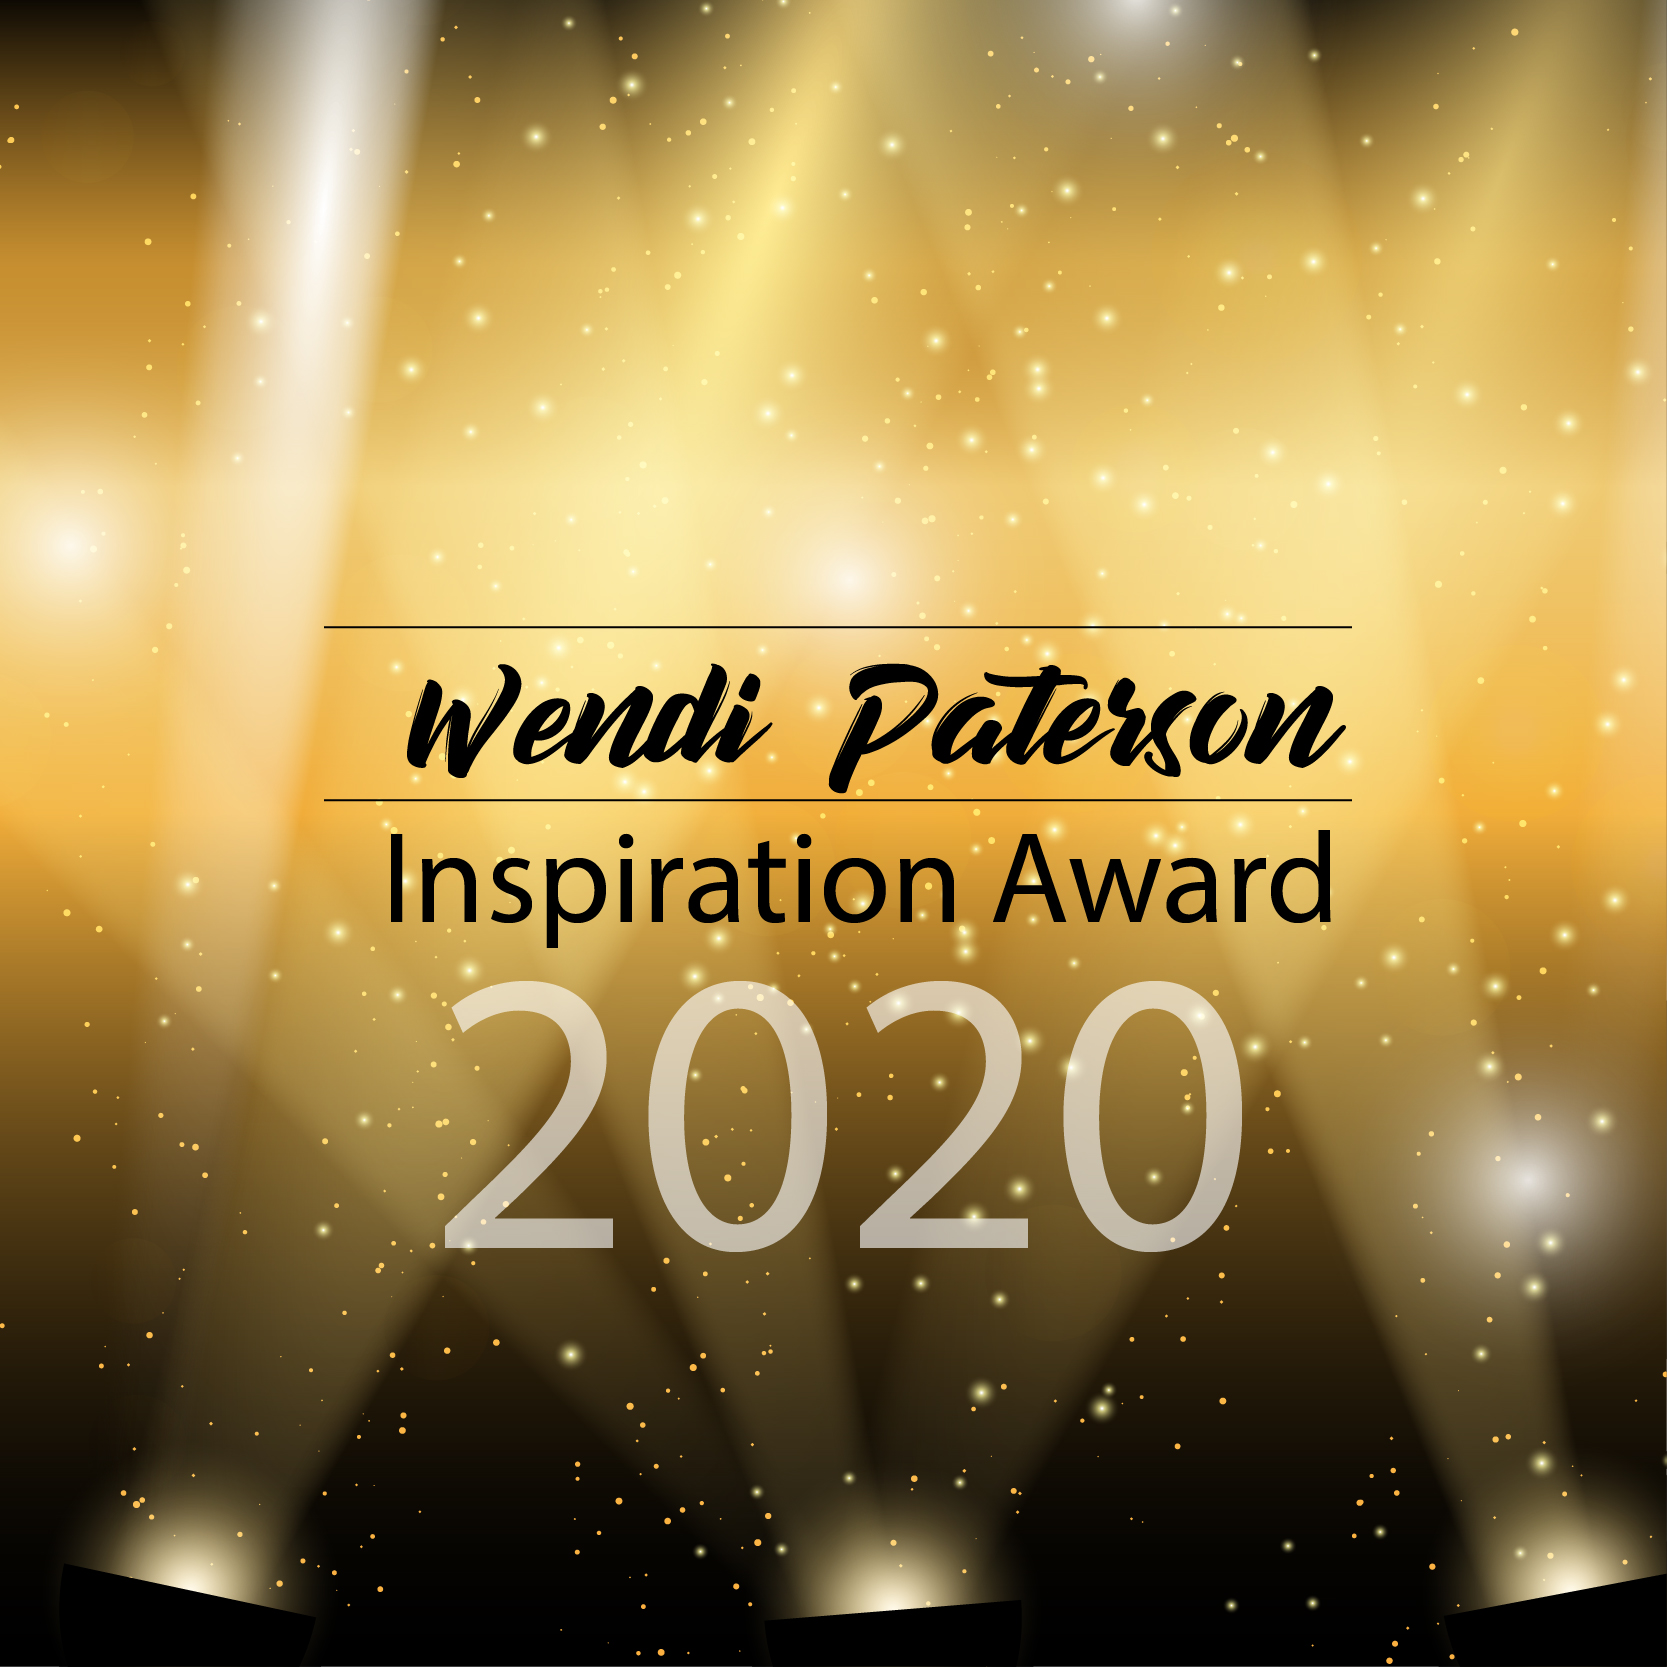 Wendi Paterson Inspiration Award – March 2020